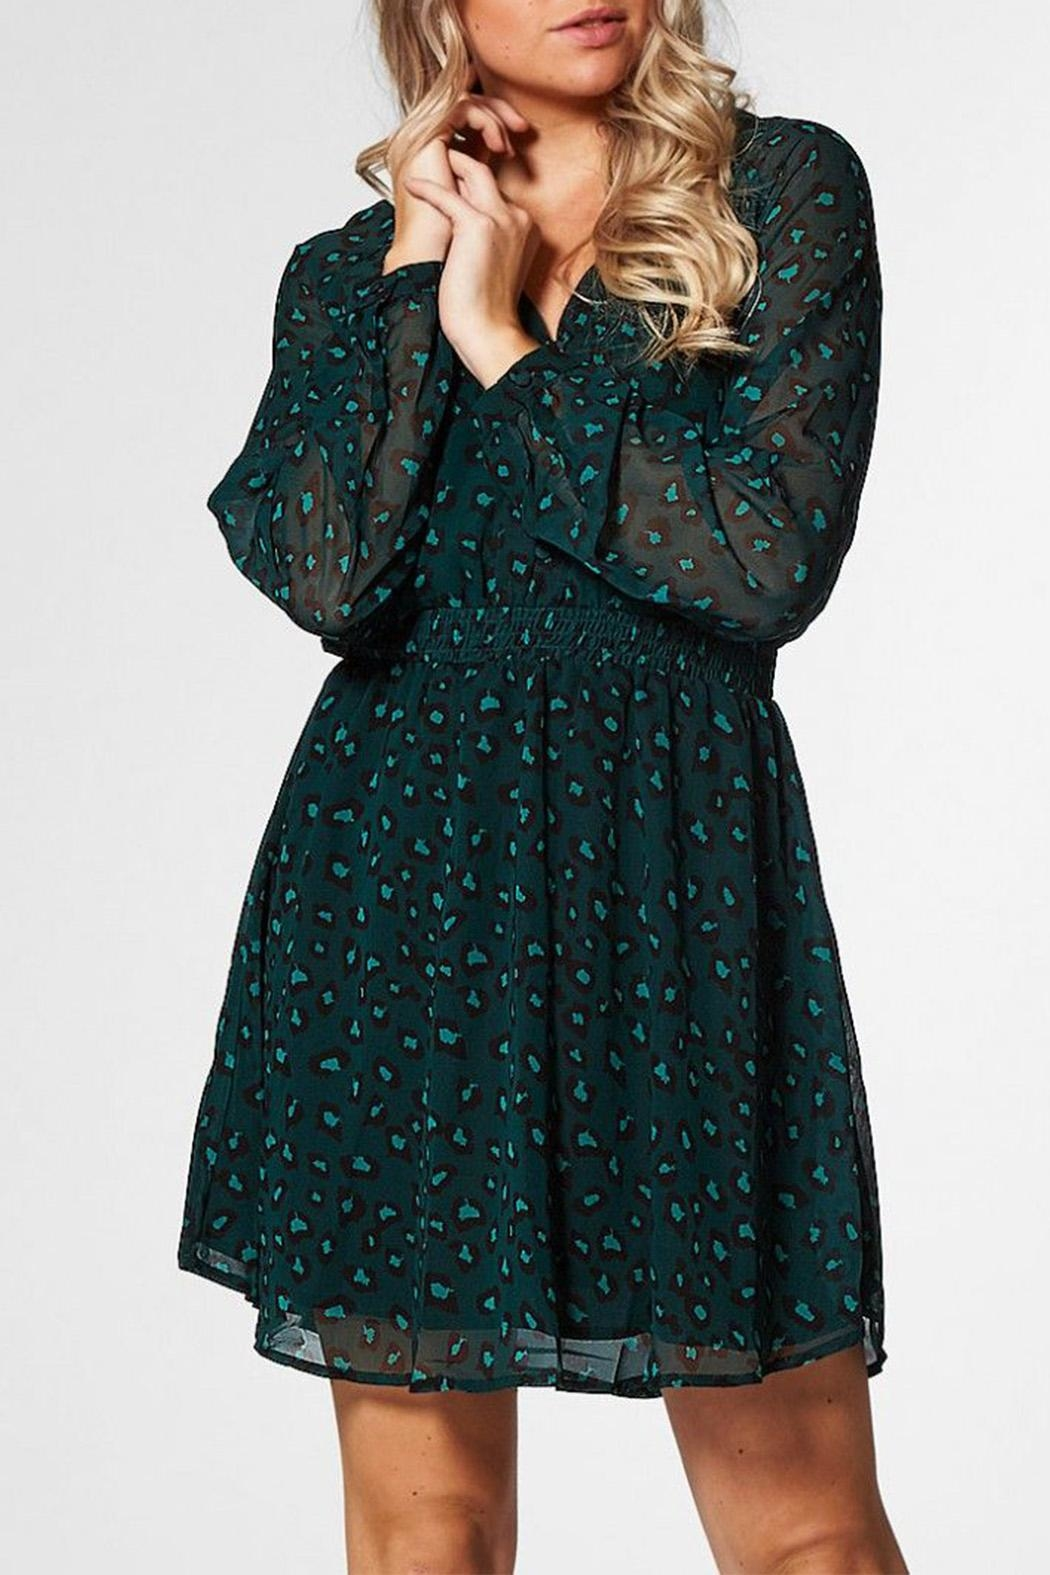 Circle Of Trust Kira Green Dress - Front Full Image